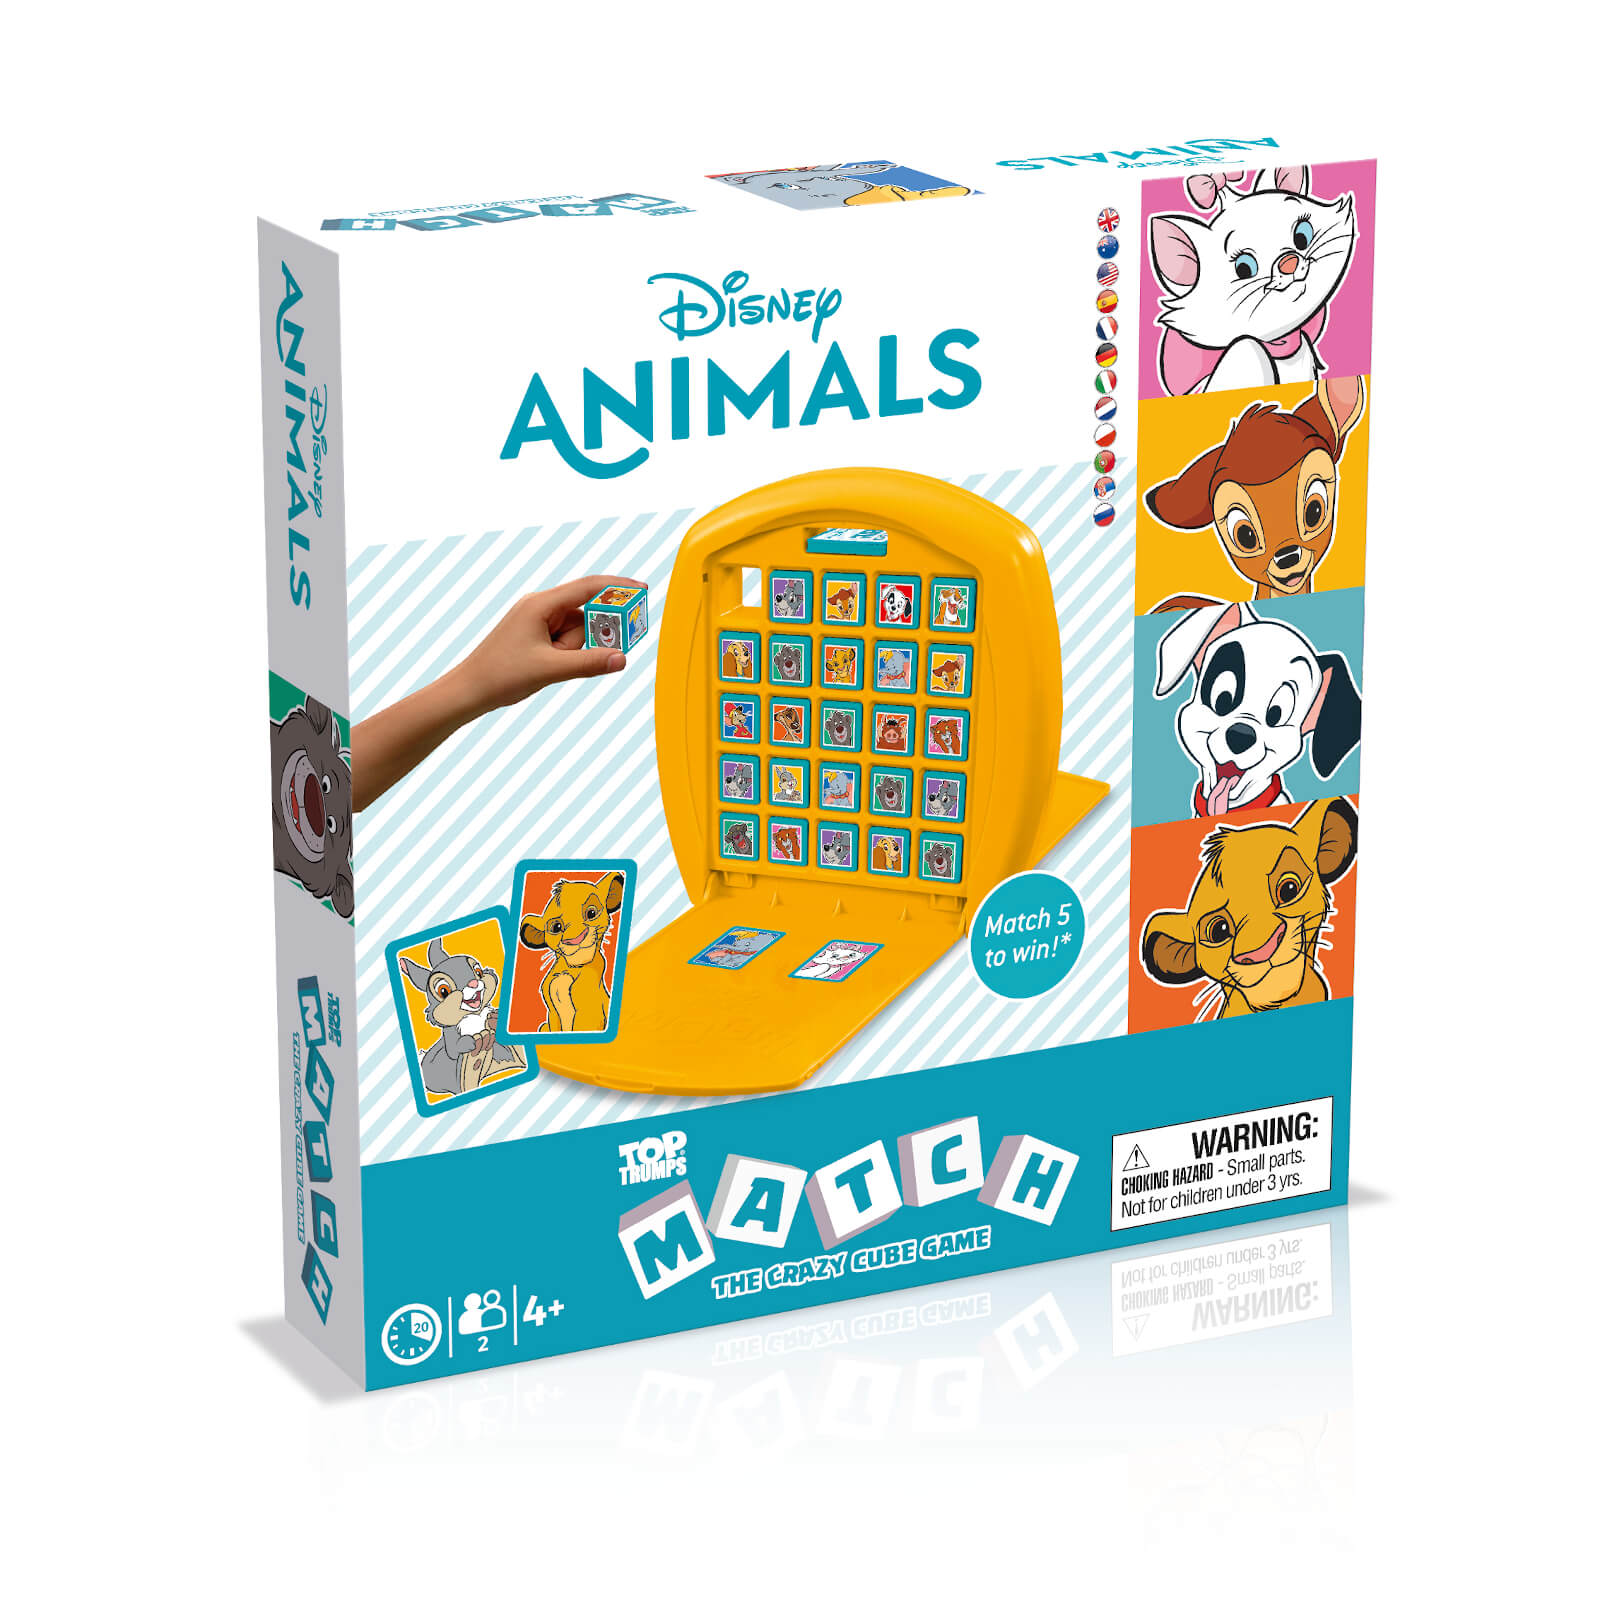 Image of Top Trumps Match Board Game - Disney Animals Edition